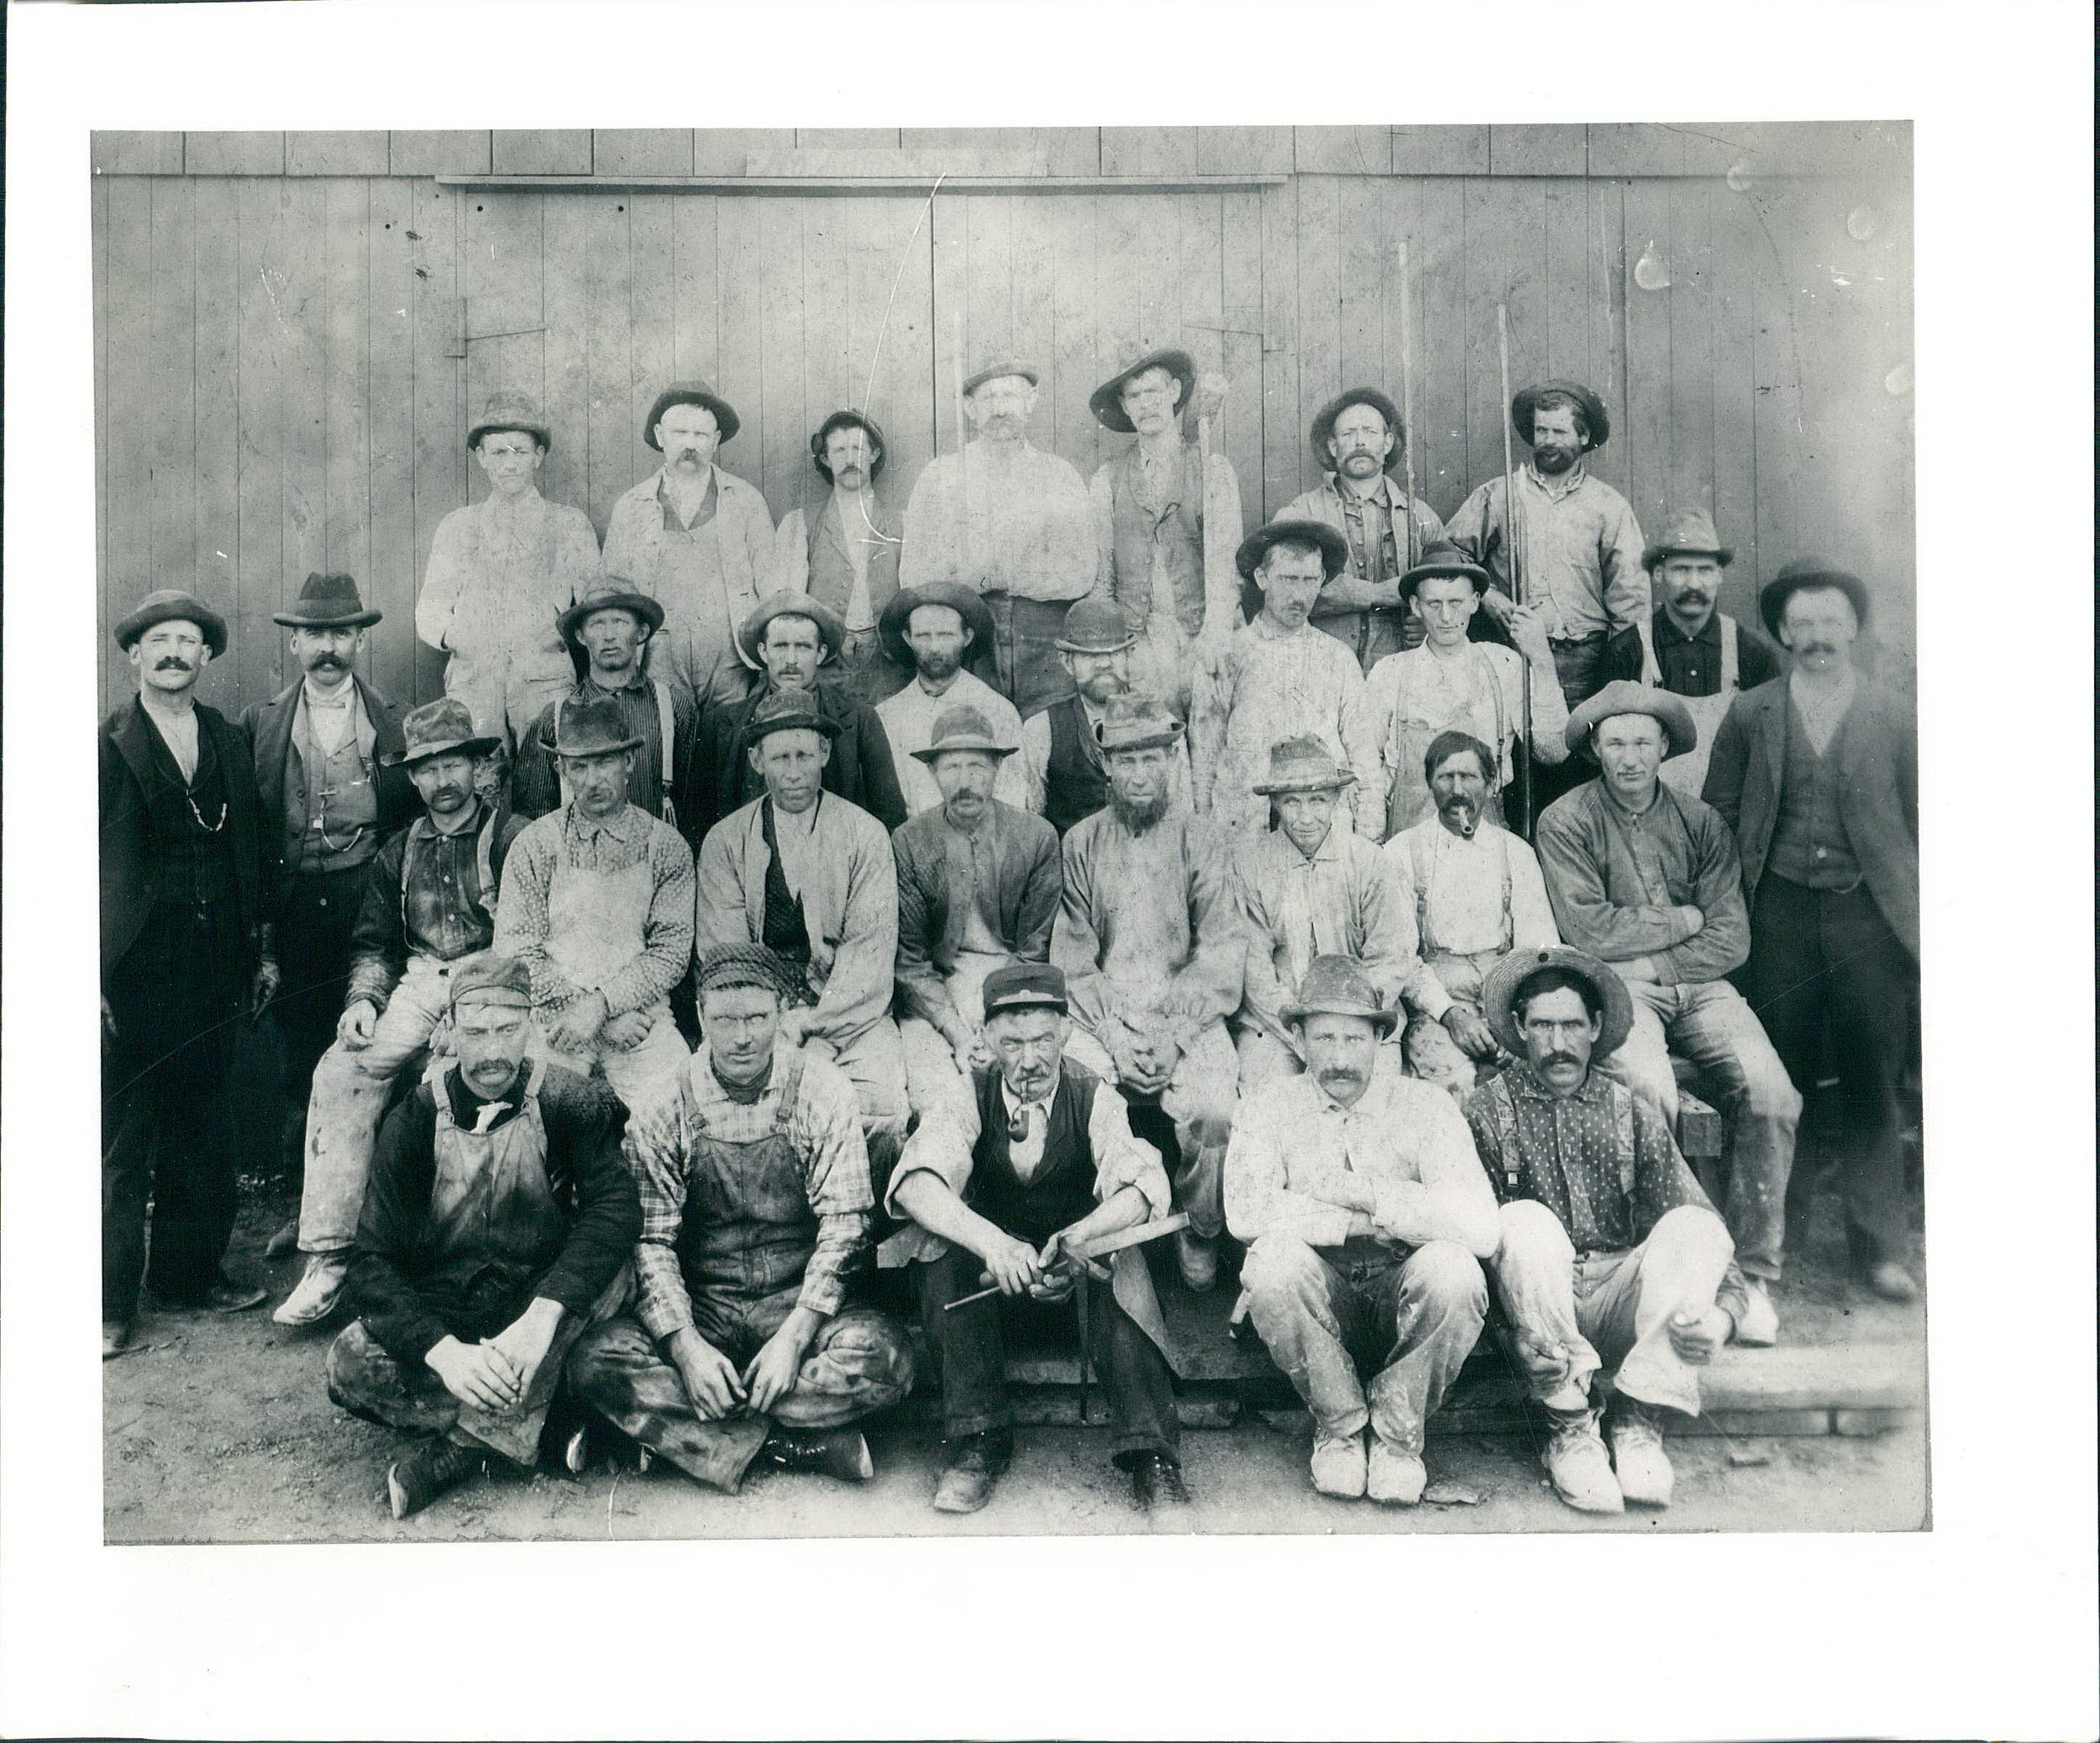 Elmhurst-Chicago Stone Co. employees 1894